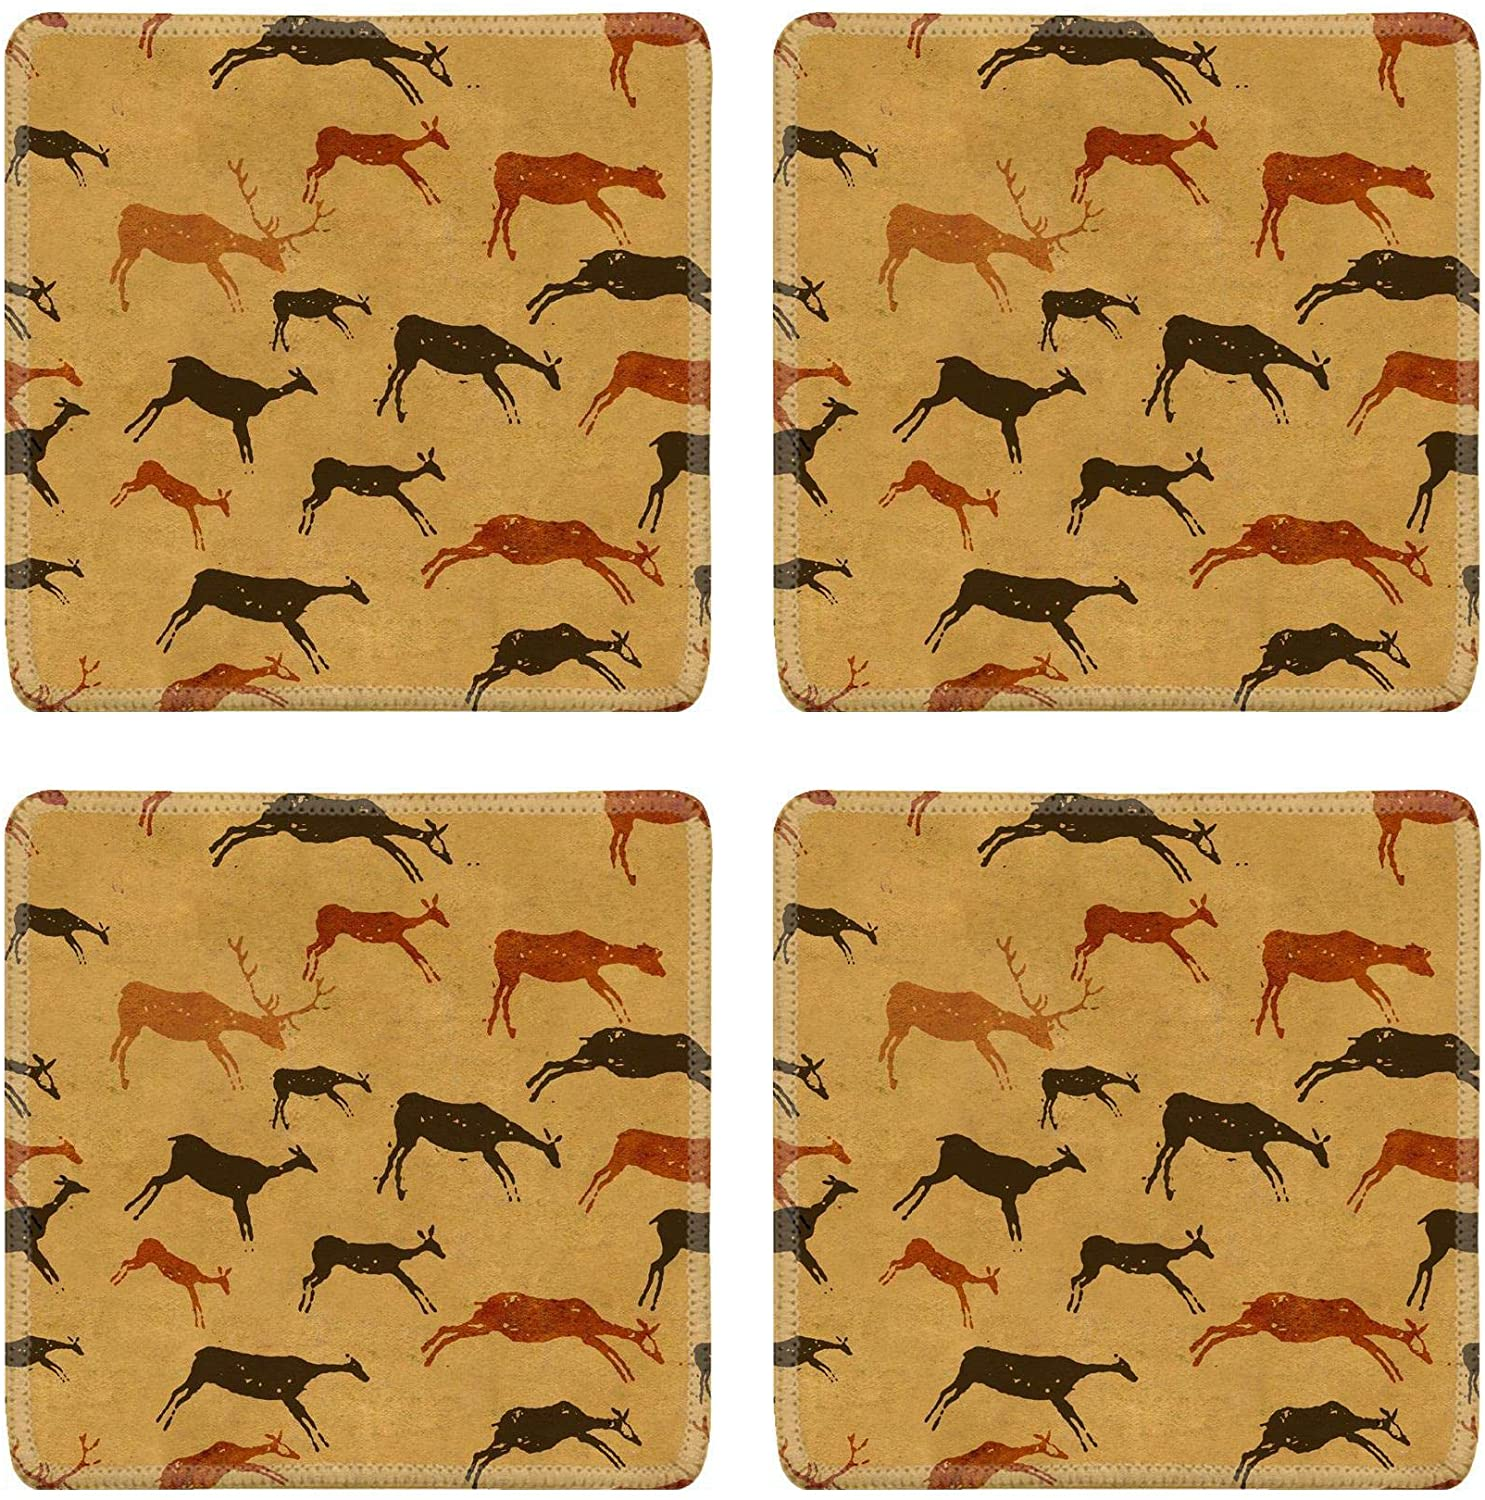 MSD Drink Coasters 4 Piece Set Image ID: 4311678 Background with drawings of the primitive person